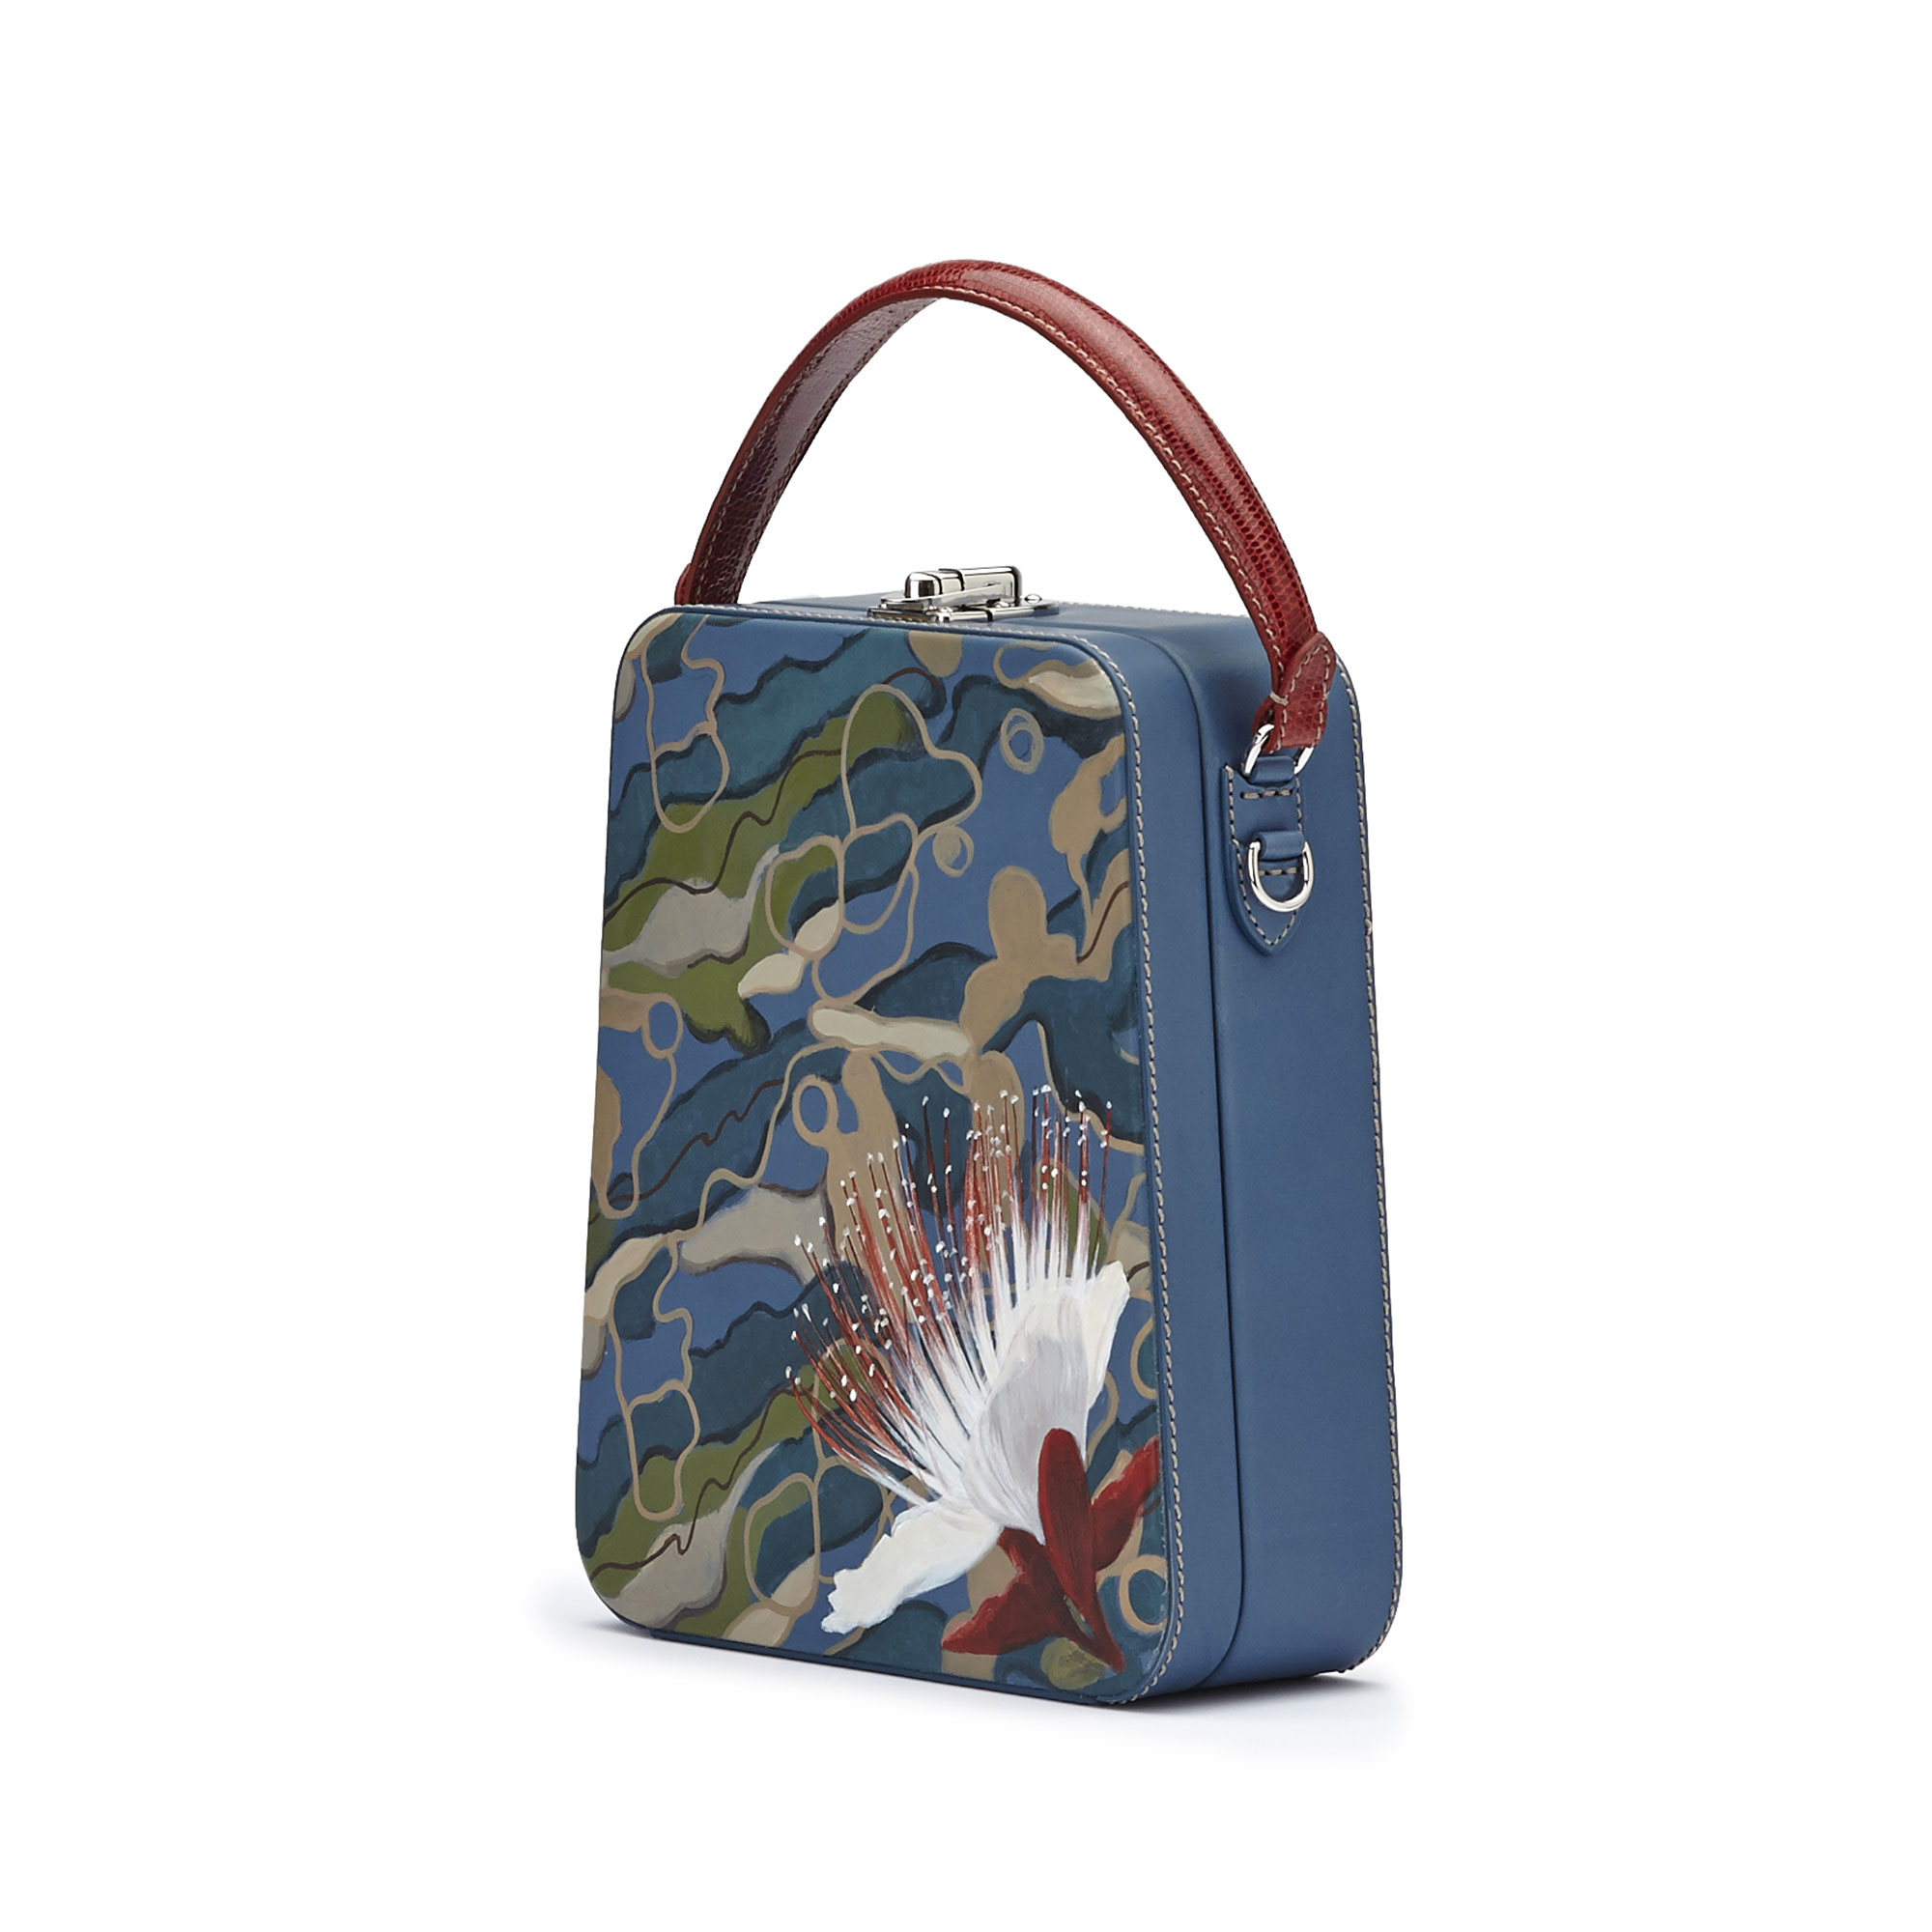 The camouflage effect with hand painted flower french calf Tall Bertoncina bag by Bertoni 1949 02